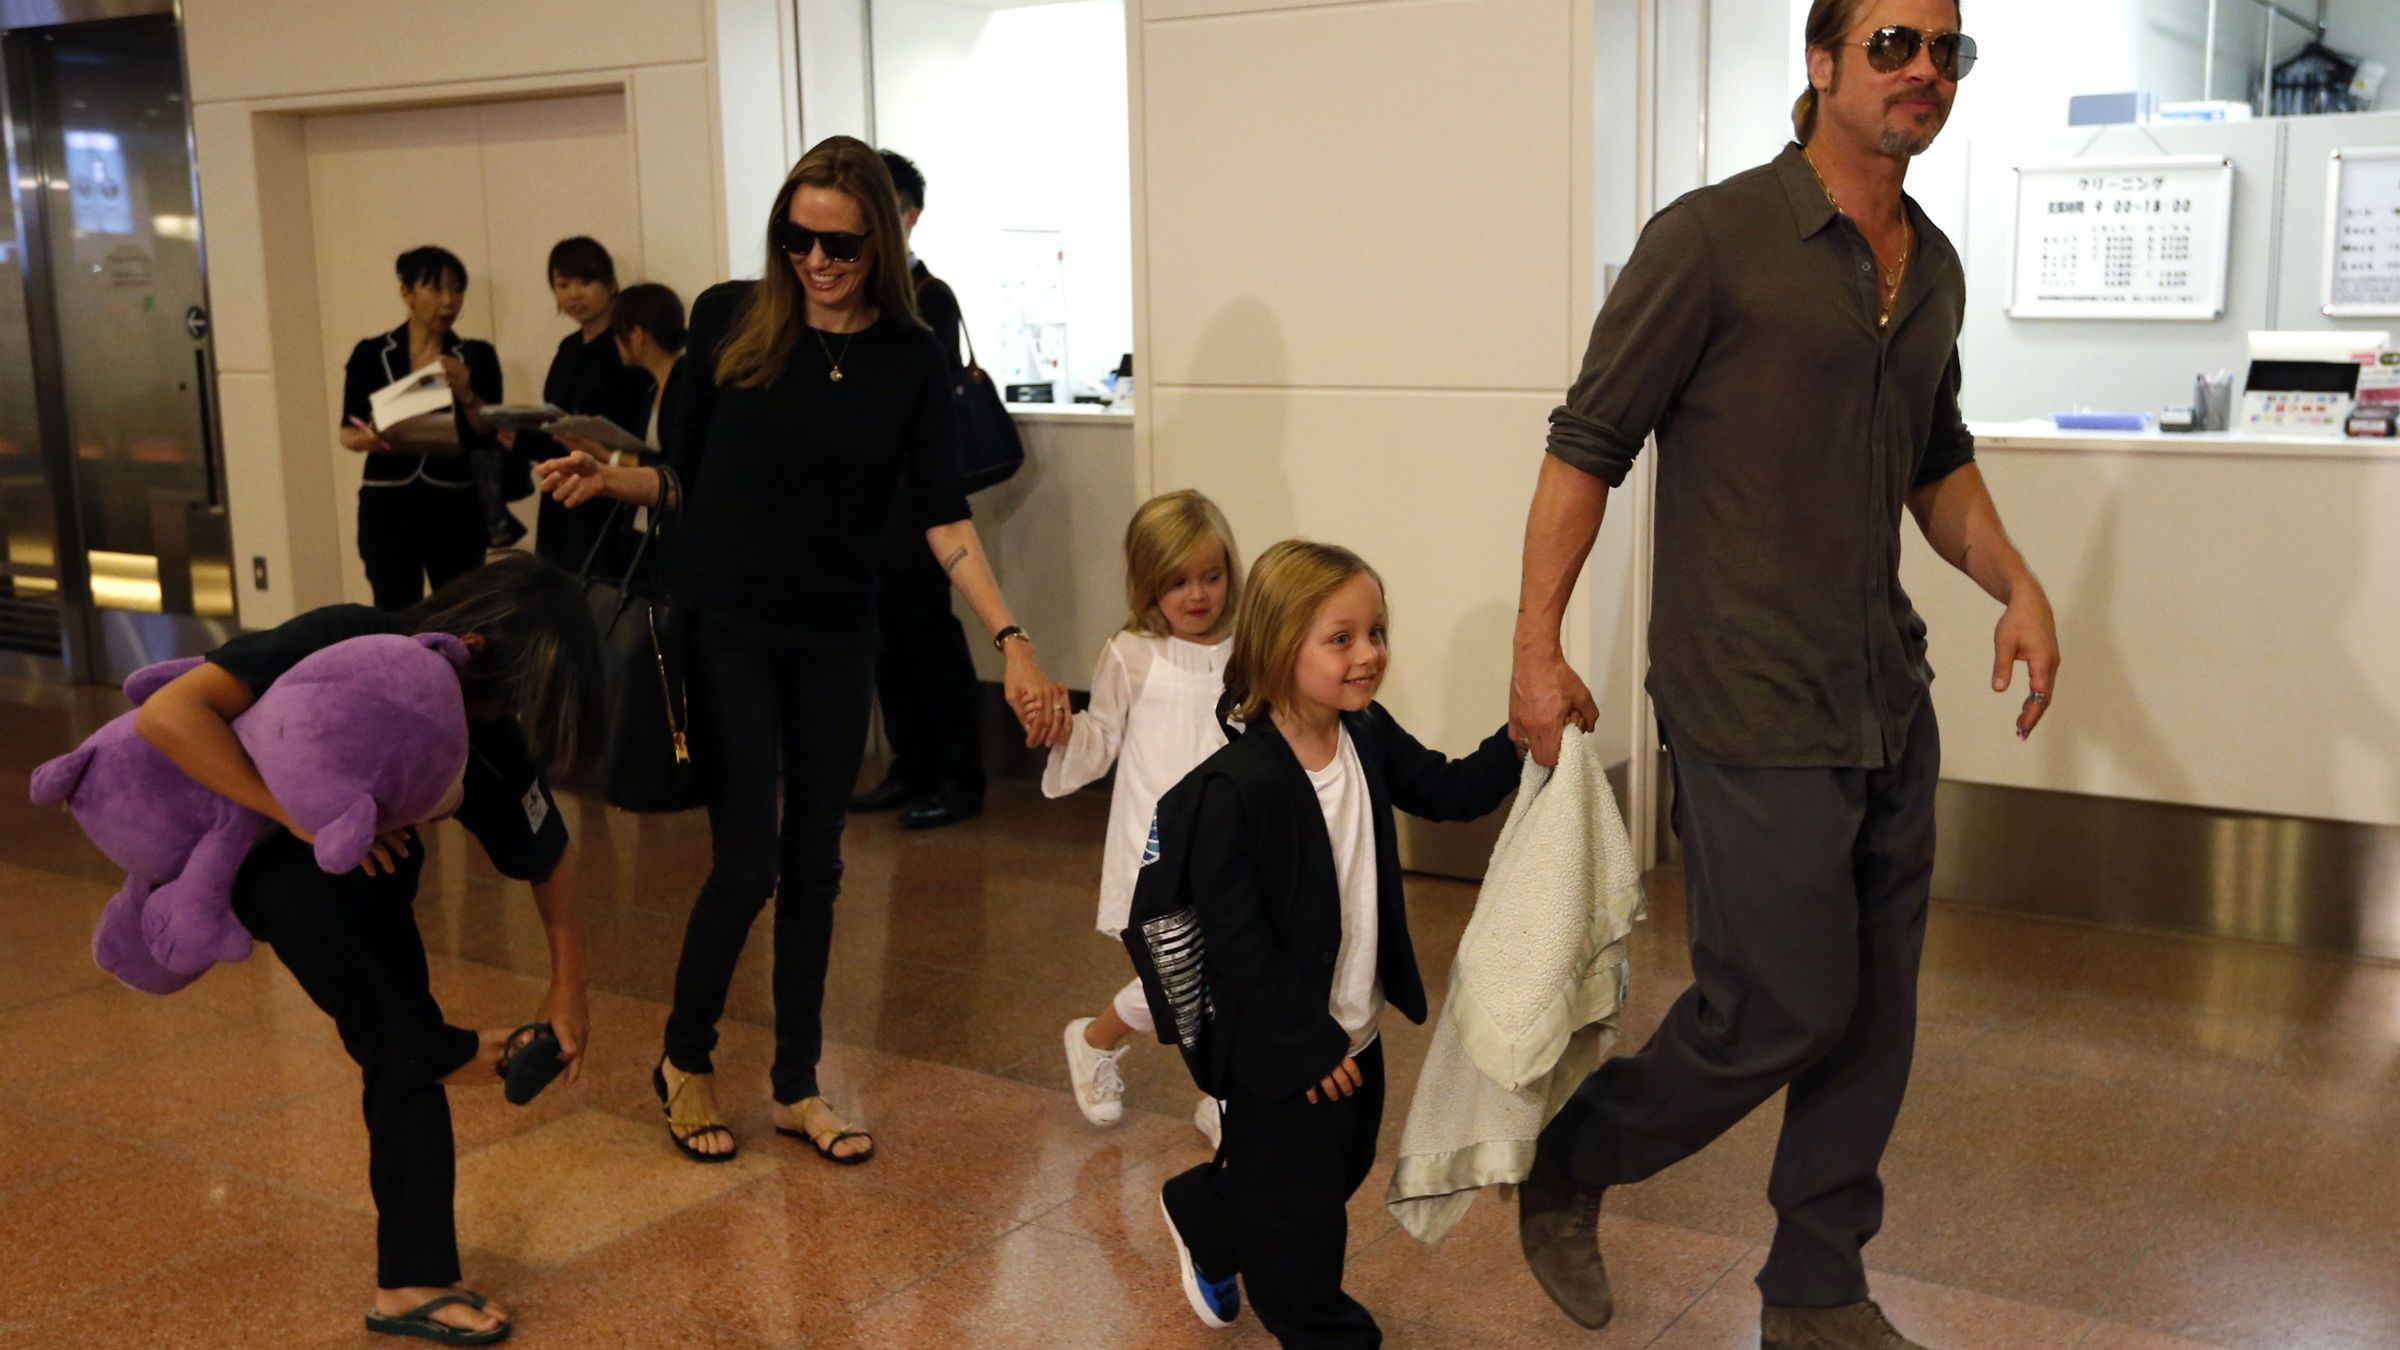 """Hollywood actor Brad Pitt (R) and actress Angelina Jolie (2nd L) arrive with their children Knox (2nd R), Vivienne (3rd R) and Pax (L) at Haneda international airport in Tokyo July 28, 2013. Pitt flew into Japan on Sunday with Jolie and their children to attend promotional events of his movie """"World War Z"""". REUTERS/Issei Kato (JAPAN - Tags: ENTERTAINMENT)"""